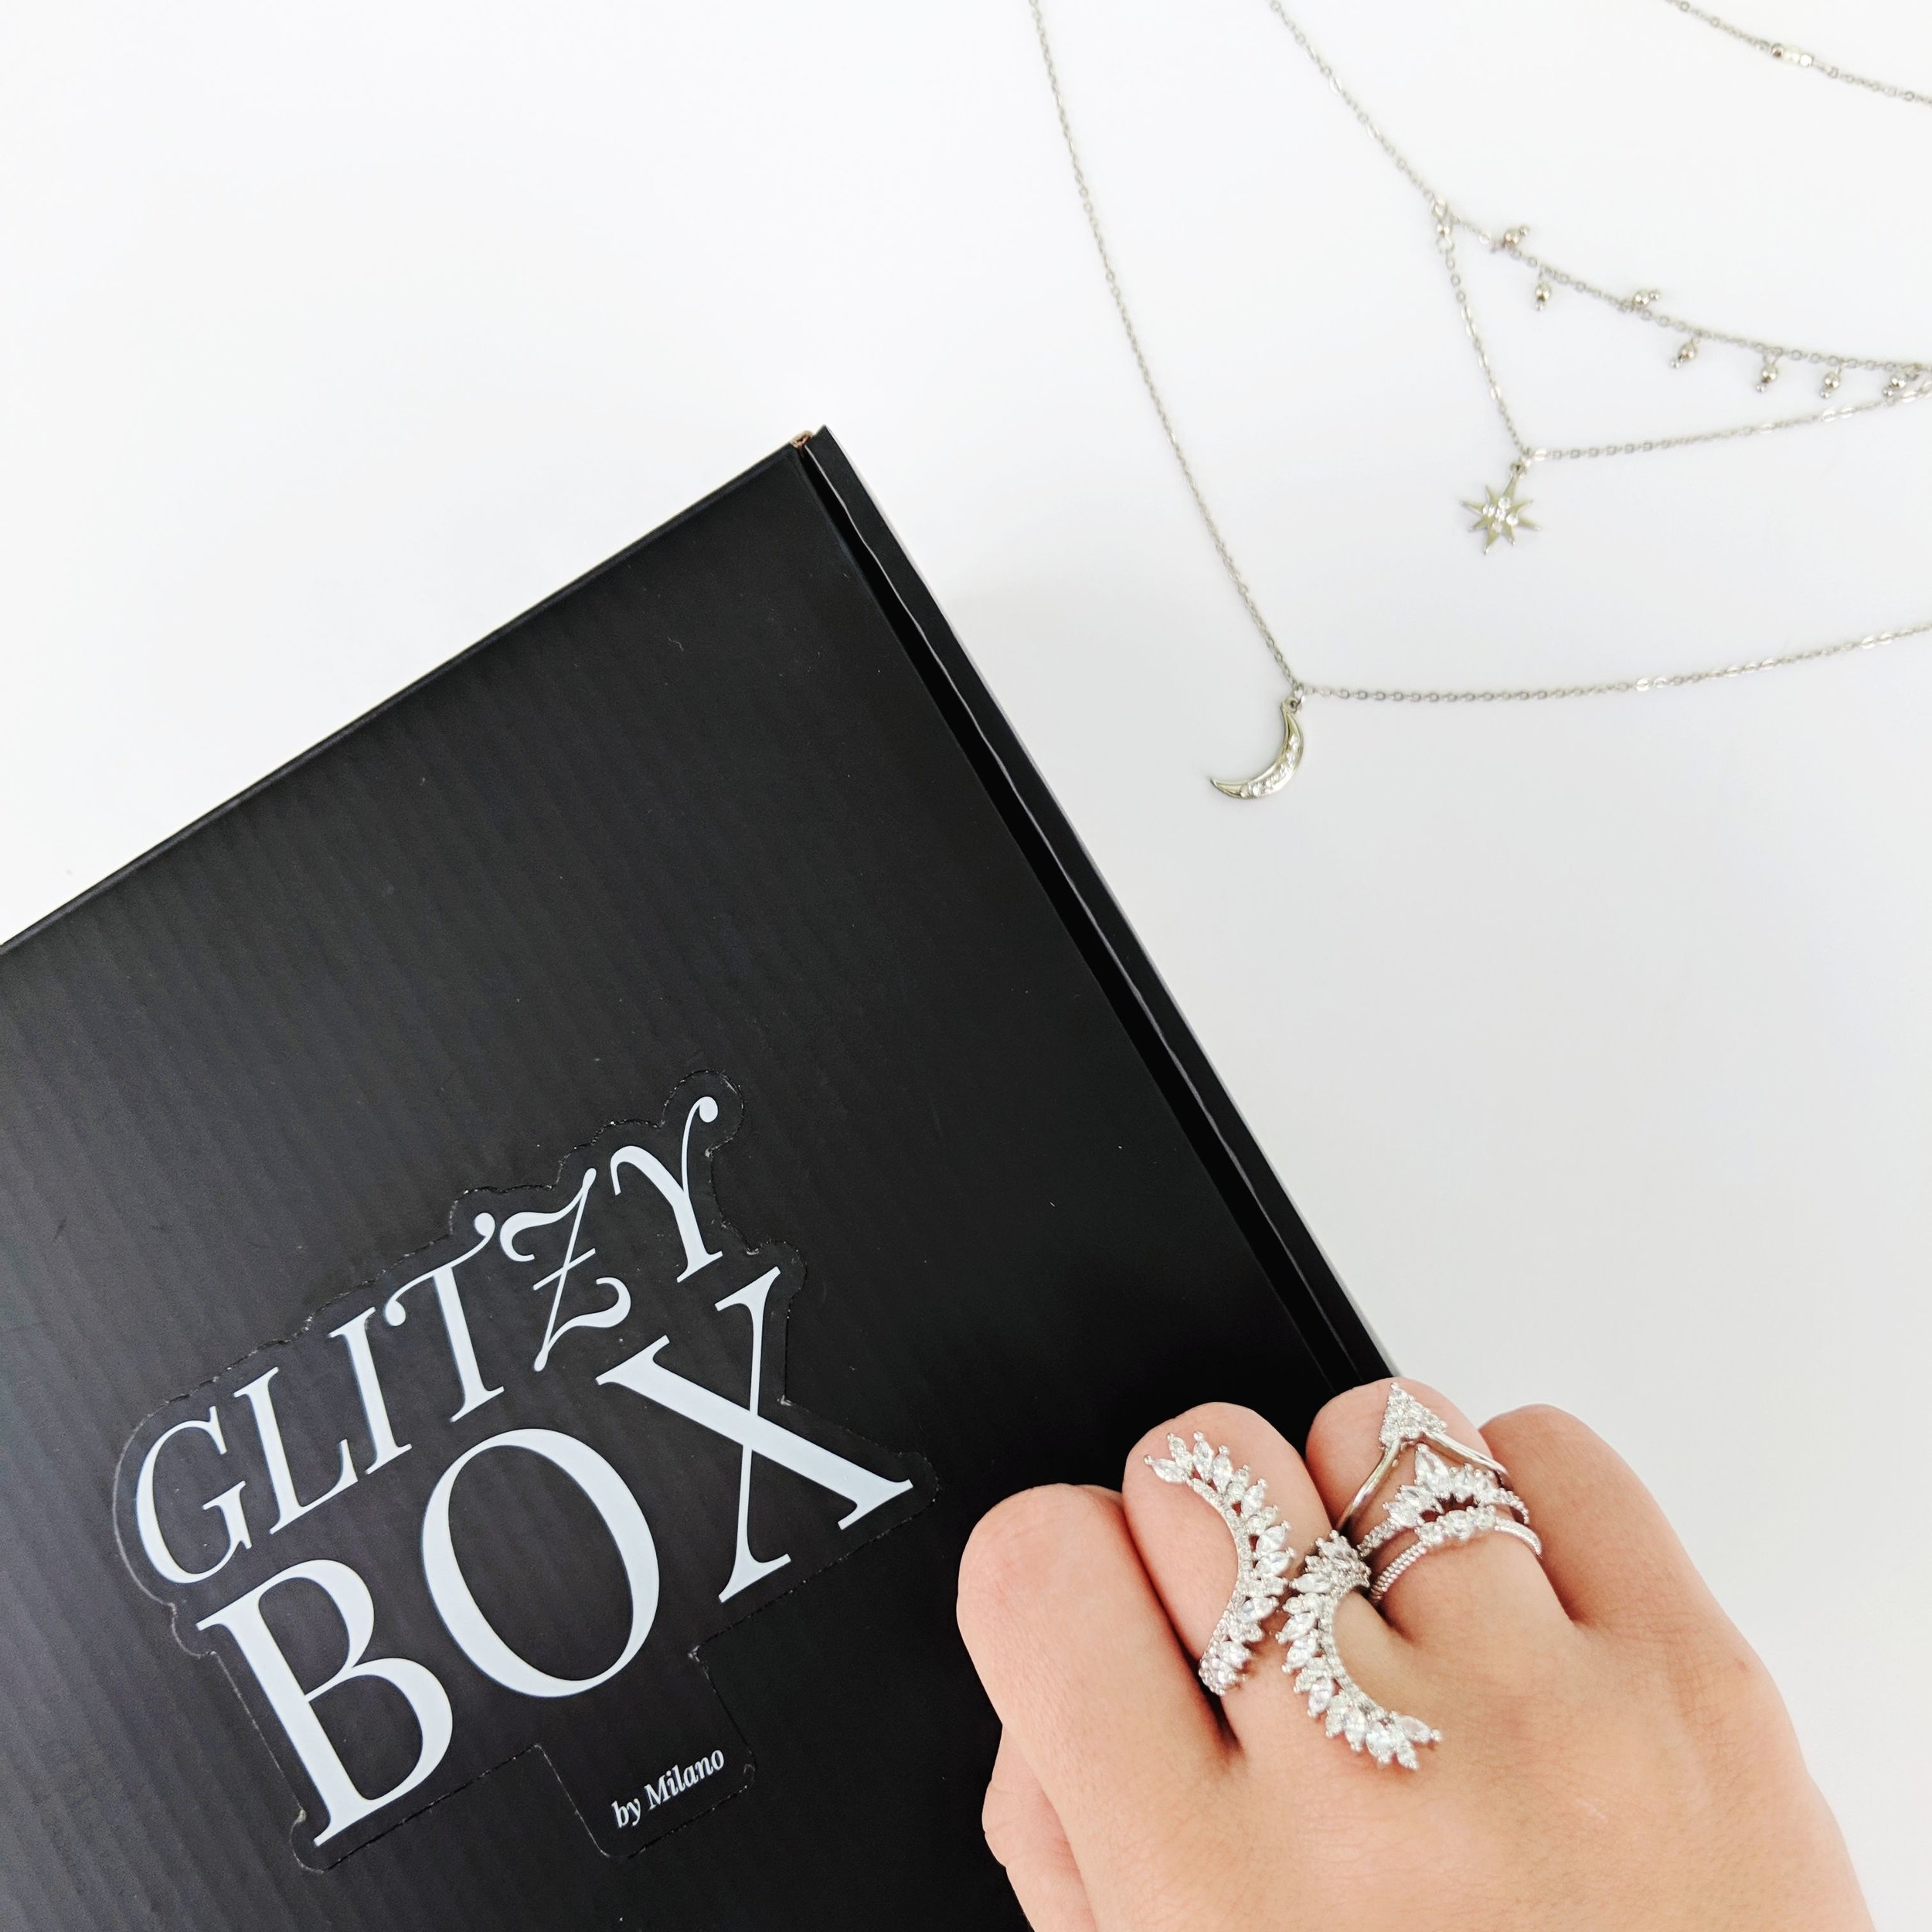 The ultimate jewelry subscription box. - GlitzyBox subscribers get the perfect subscription box for their style, including 4-6 pieces of beautiful jewelry + free gifts…… oh and IT SHIPS FREE.And don't worry about fussing with return labels, each piece you get is yours to wear forever!